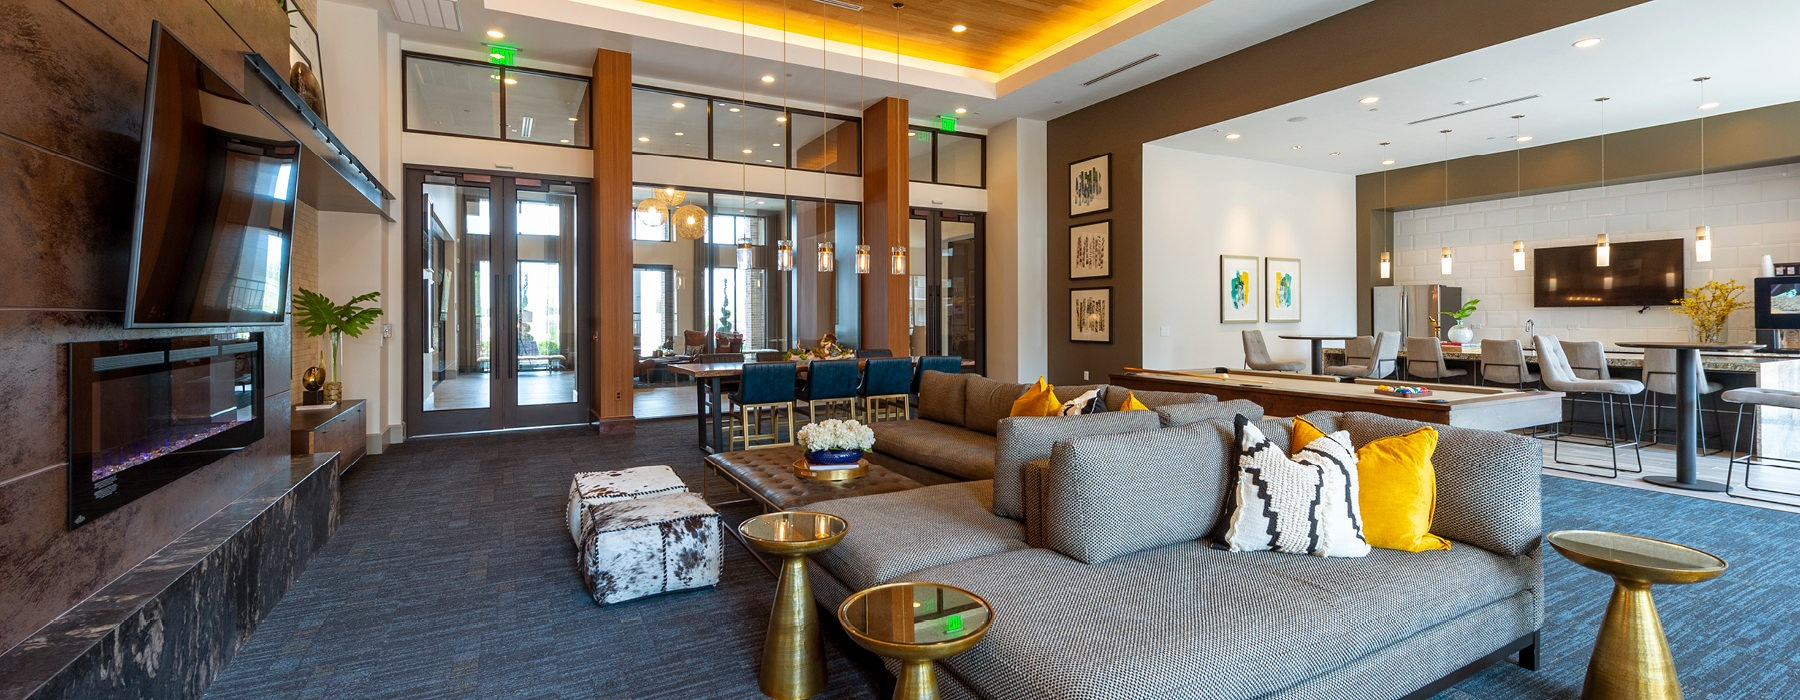 roomy clubhouse with large couch in front of fireplace and tv